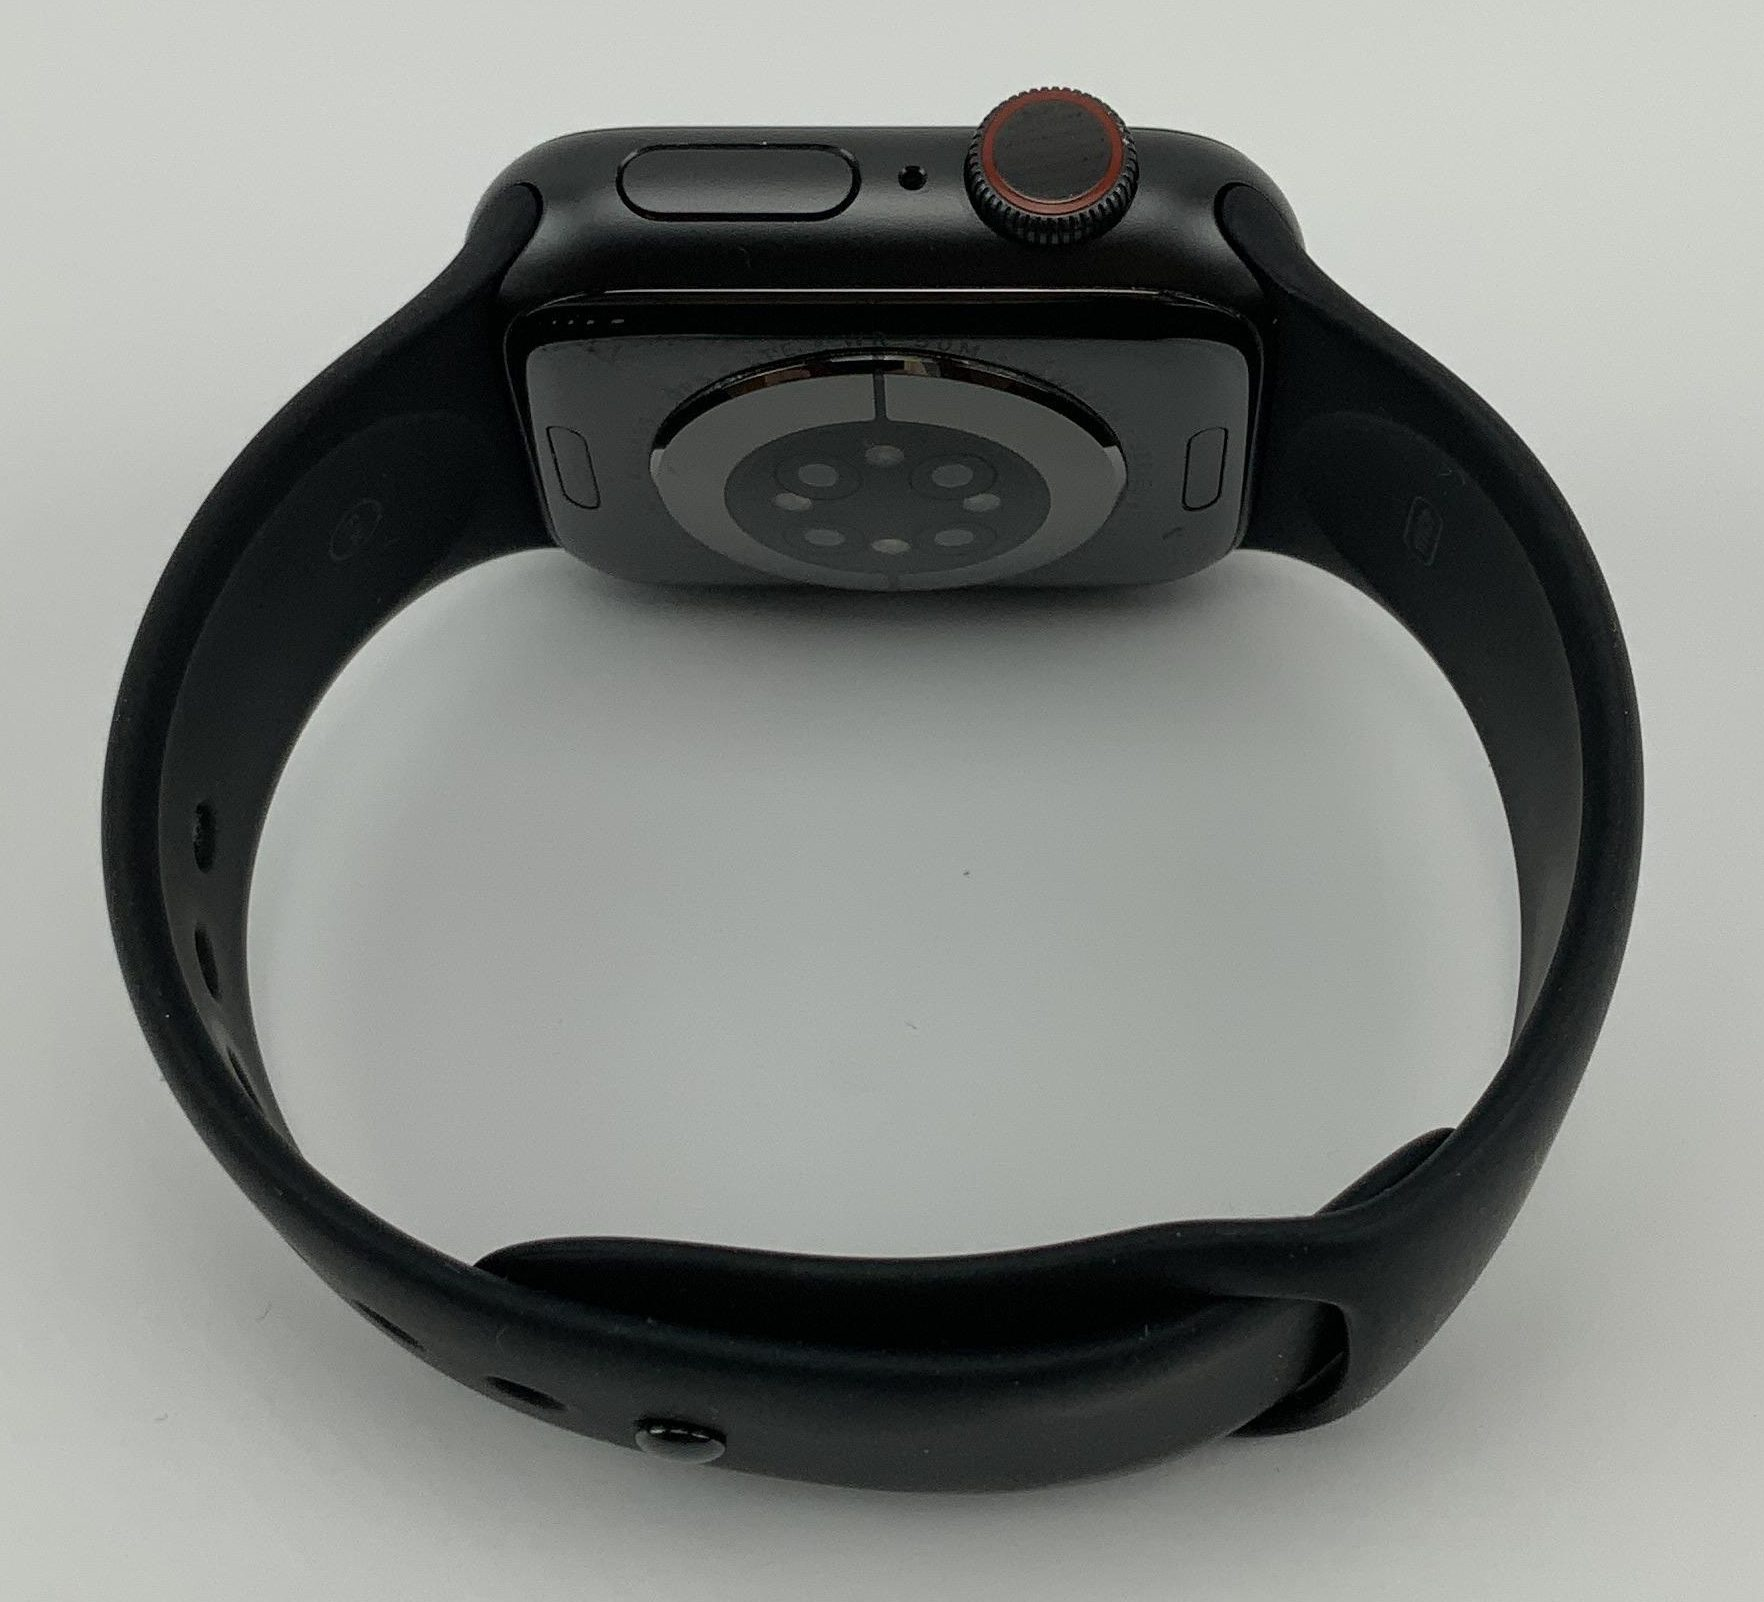 Watch Series 6 Aluminum Cellular (40mm), Space Gray, Afbeelding 2